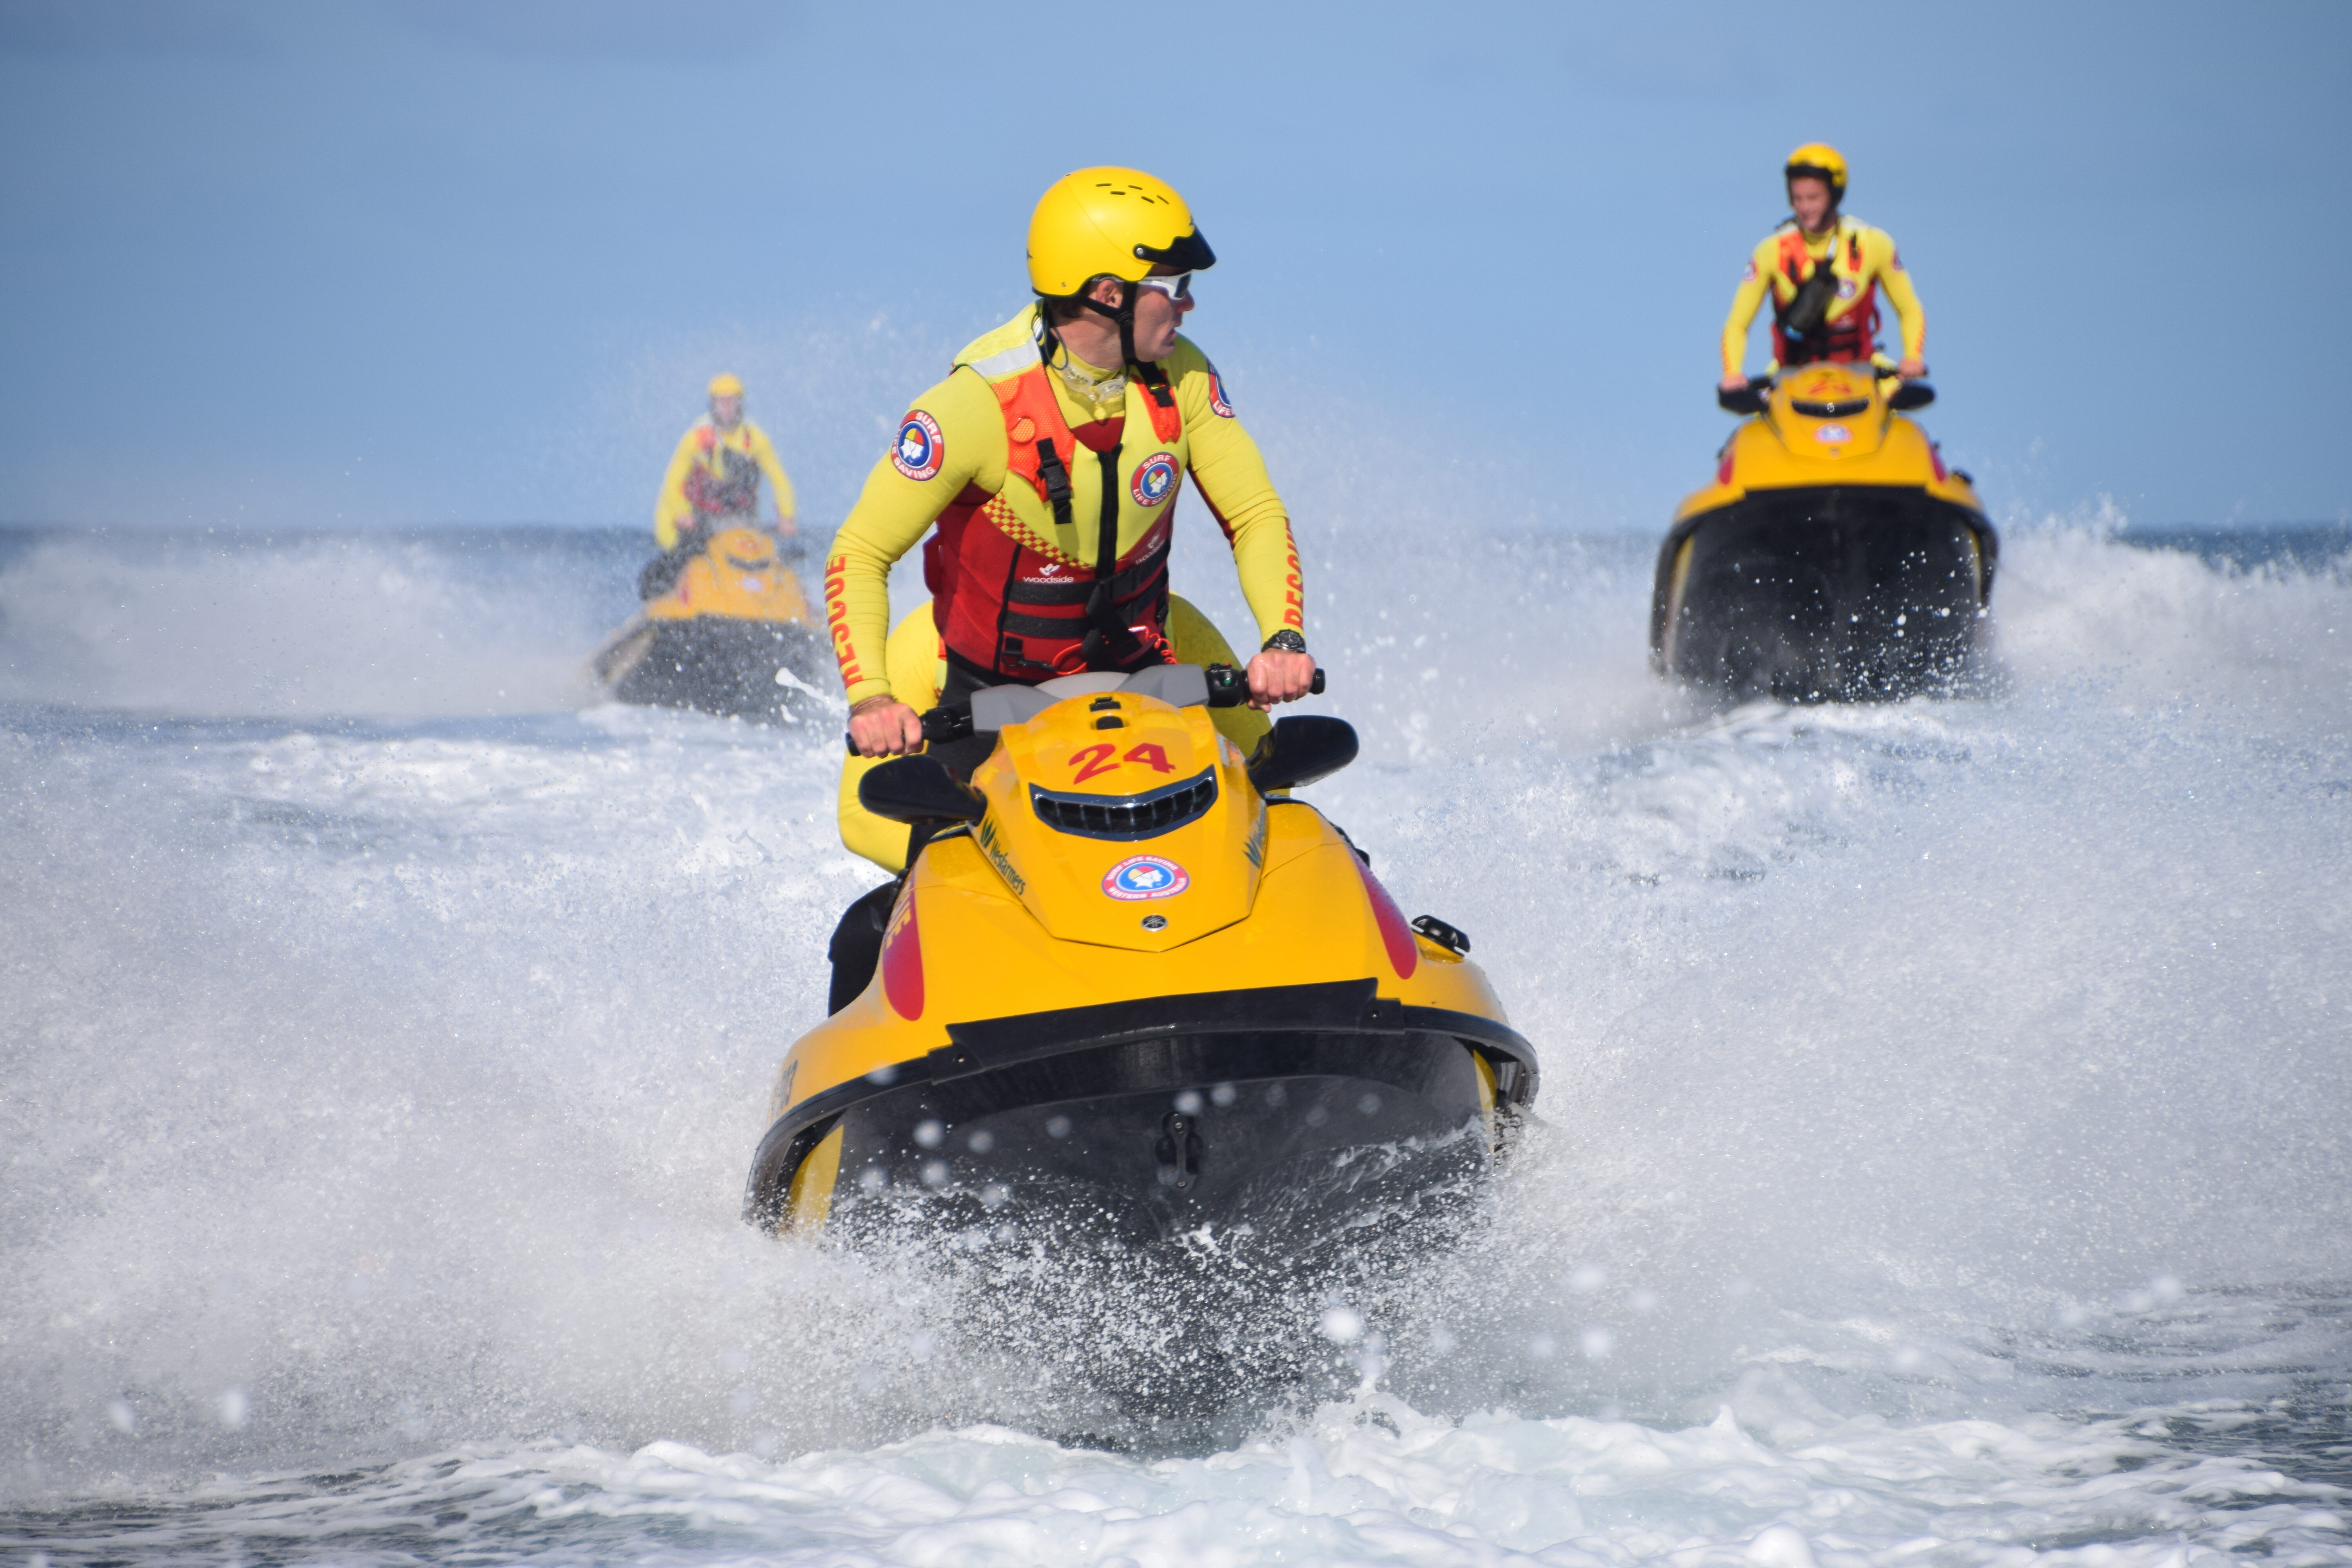 The Wesfarmers Jet Ski Program is an integral element of Surf Life Saving WA's life saving services. Got what it takes? Then join us!